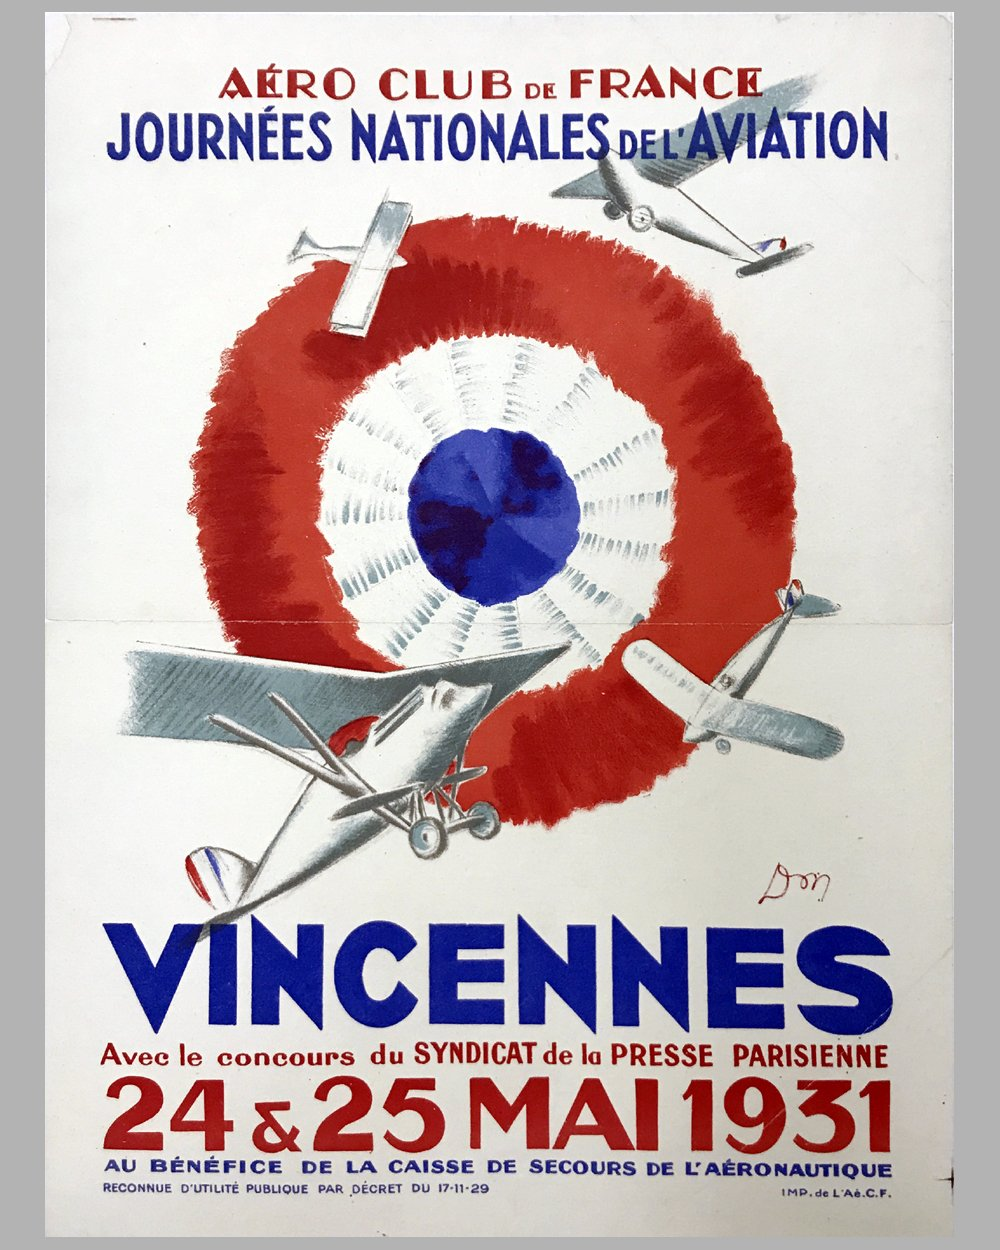 1931 Vincennes Air Show original event poster by Don, France